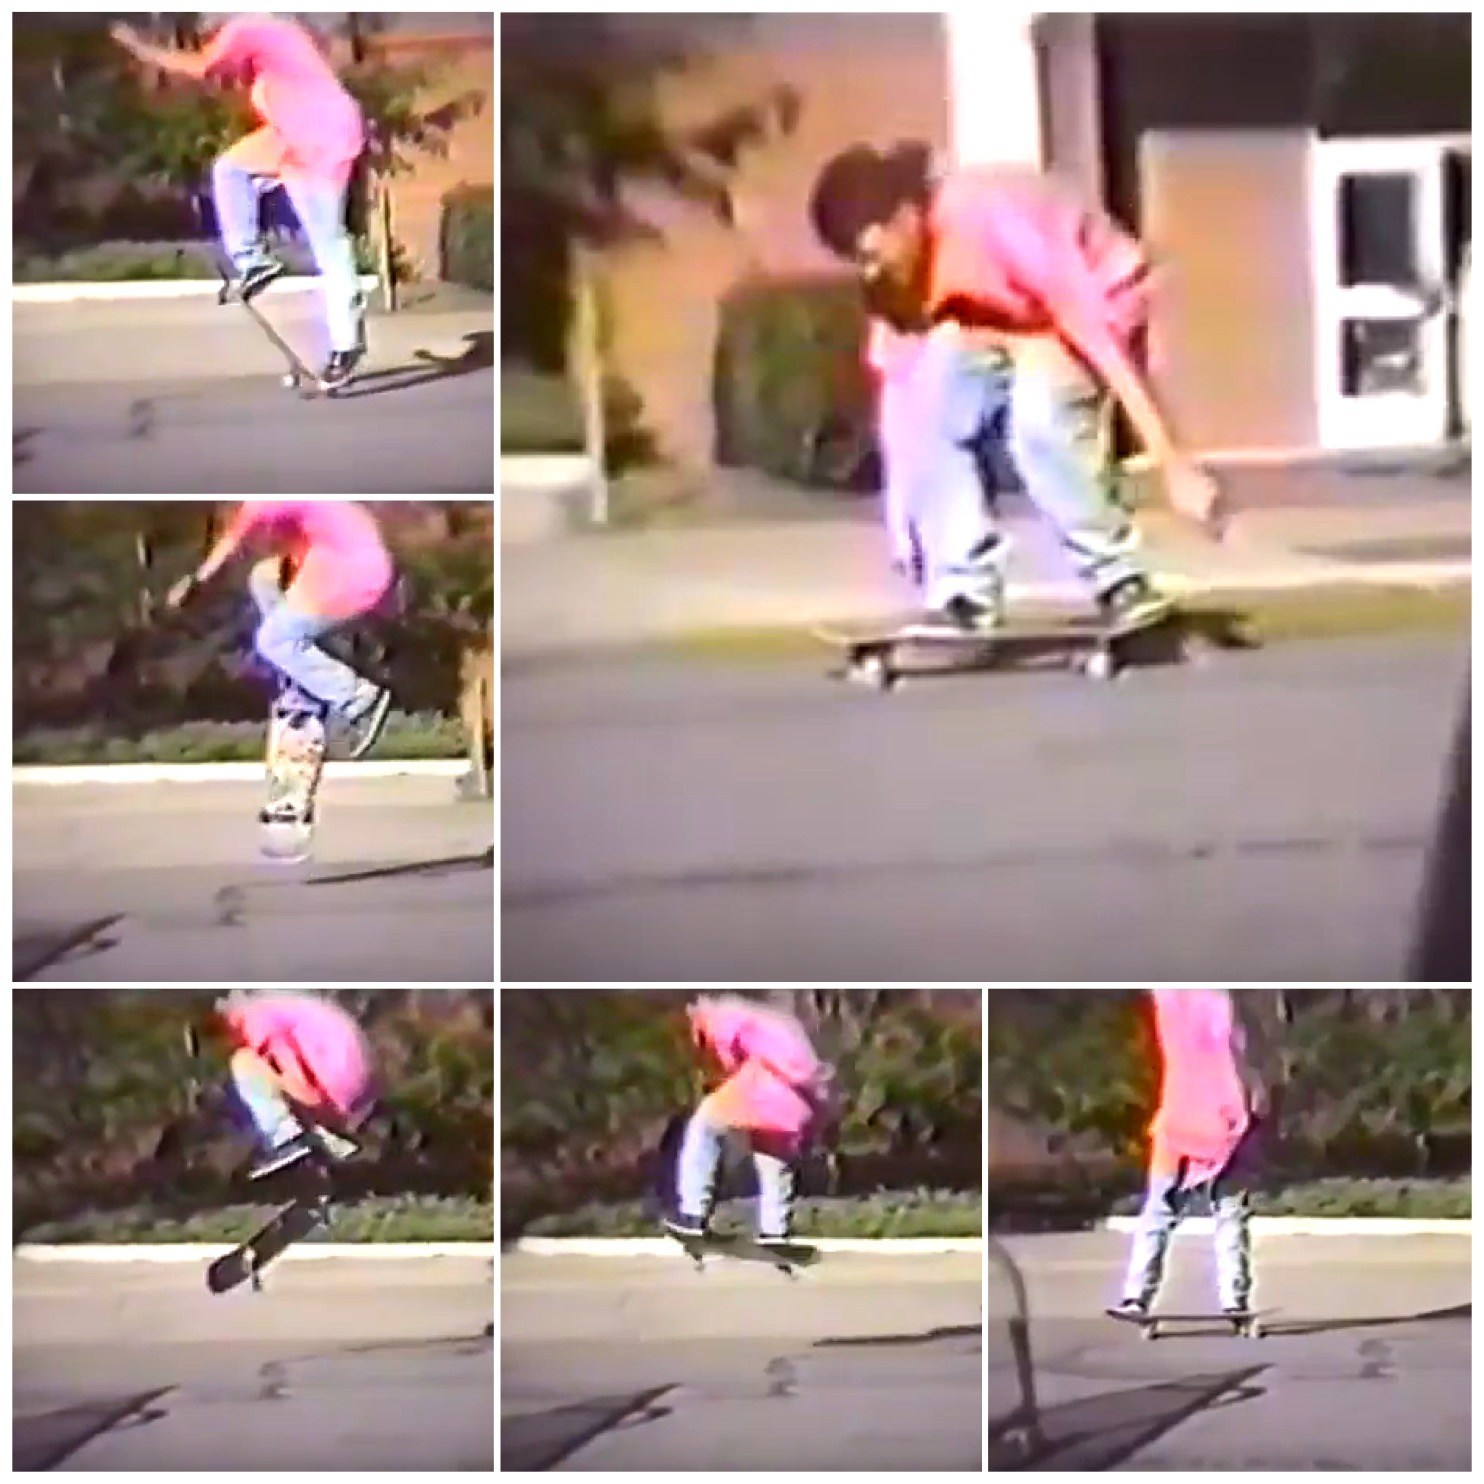 The first frontside flip I ever saw on flatground. Ali Mills 1990.